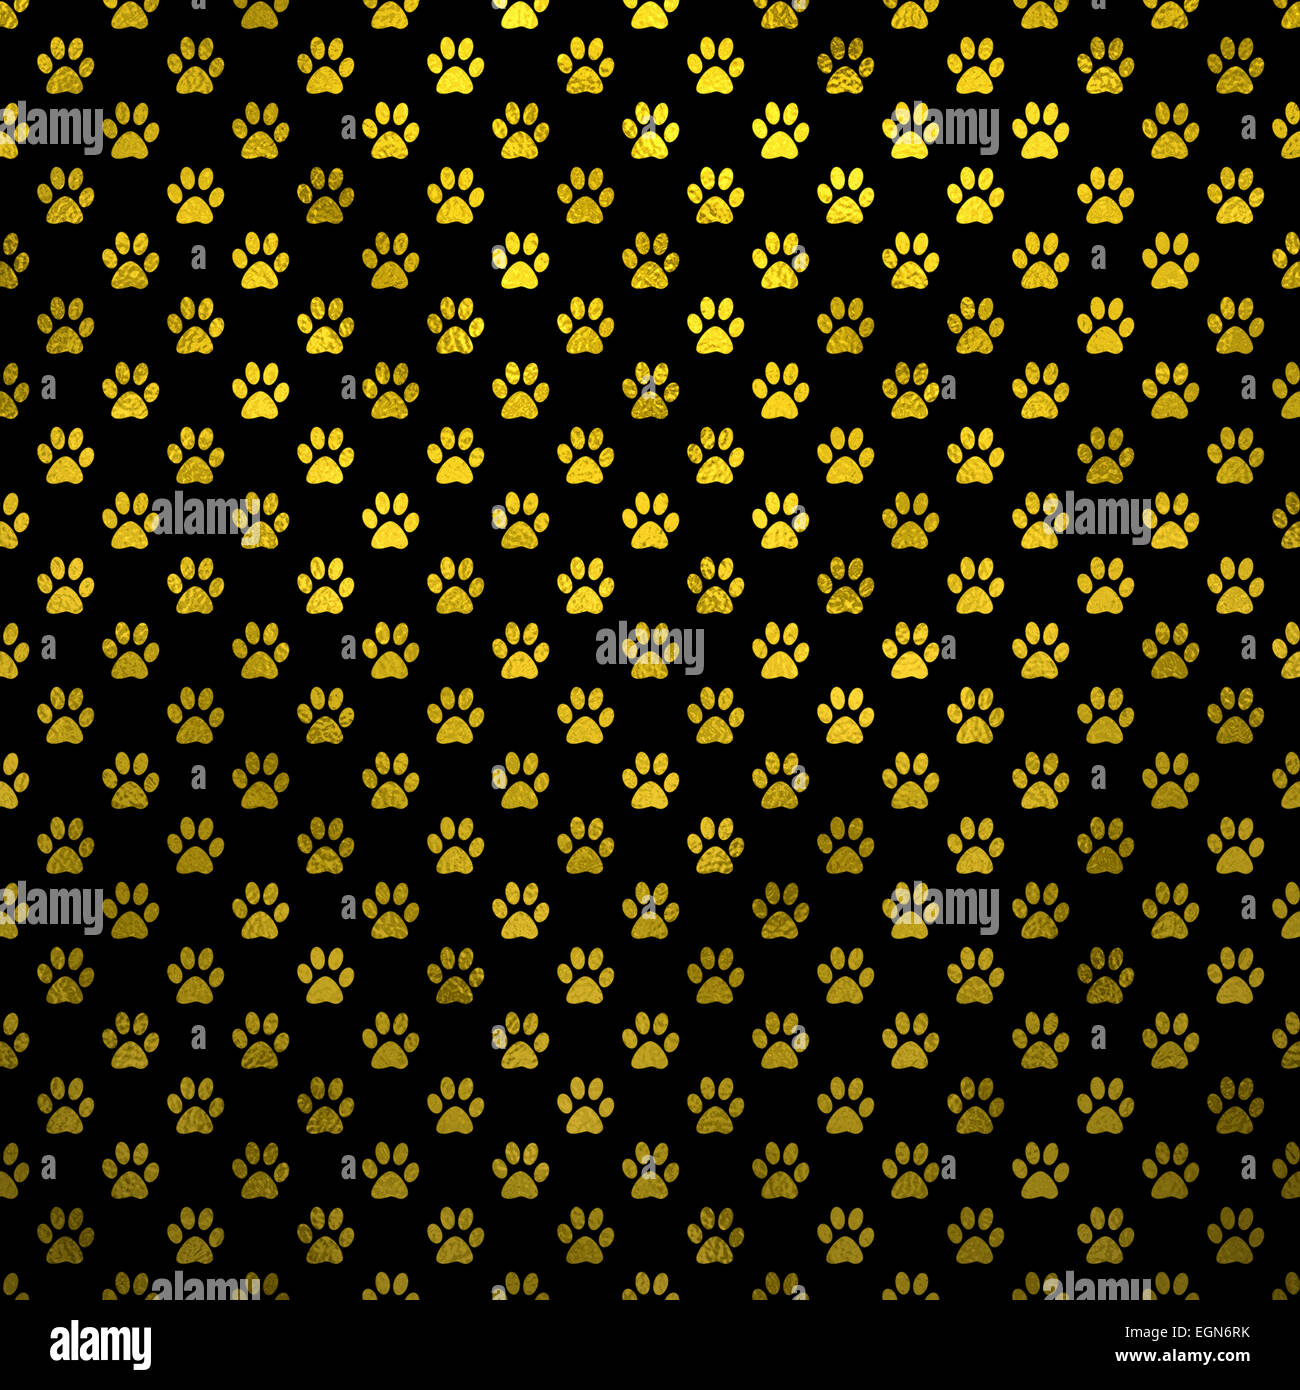 Black and gold polka dot wallpaper